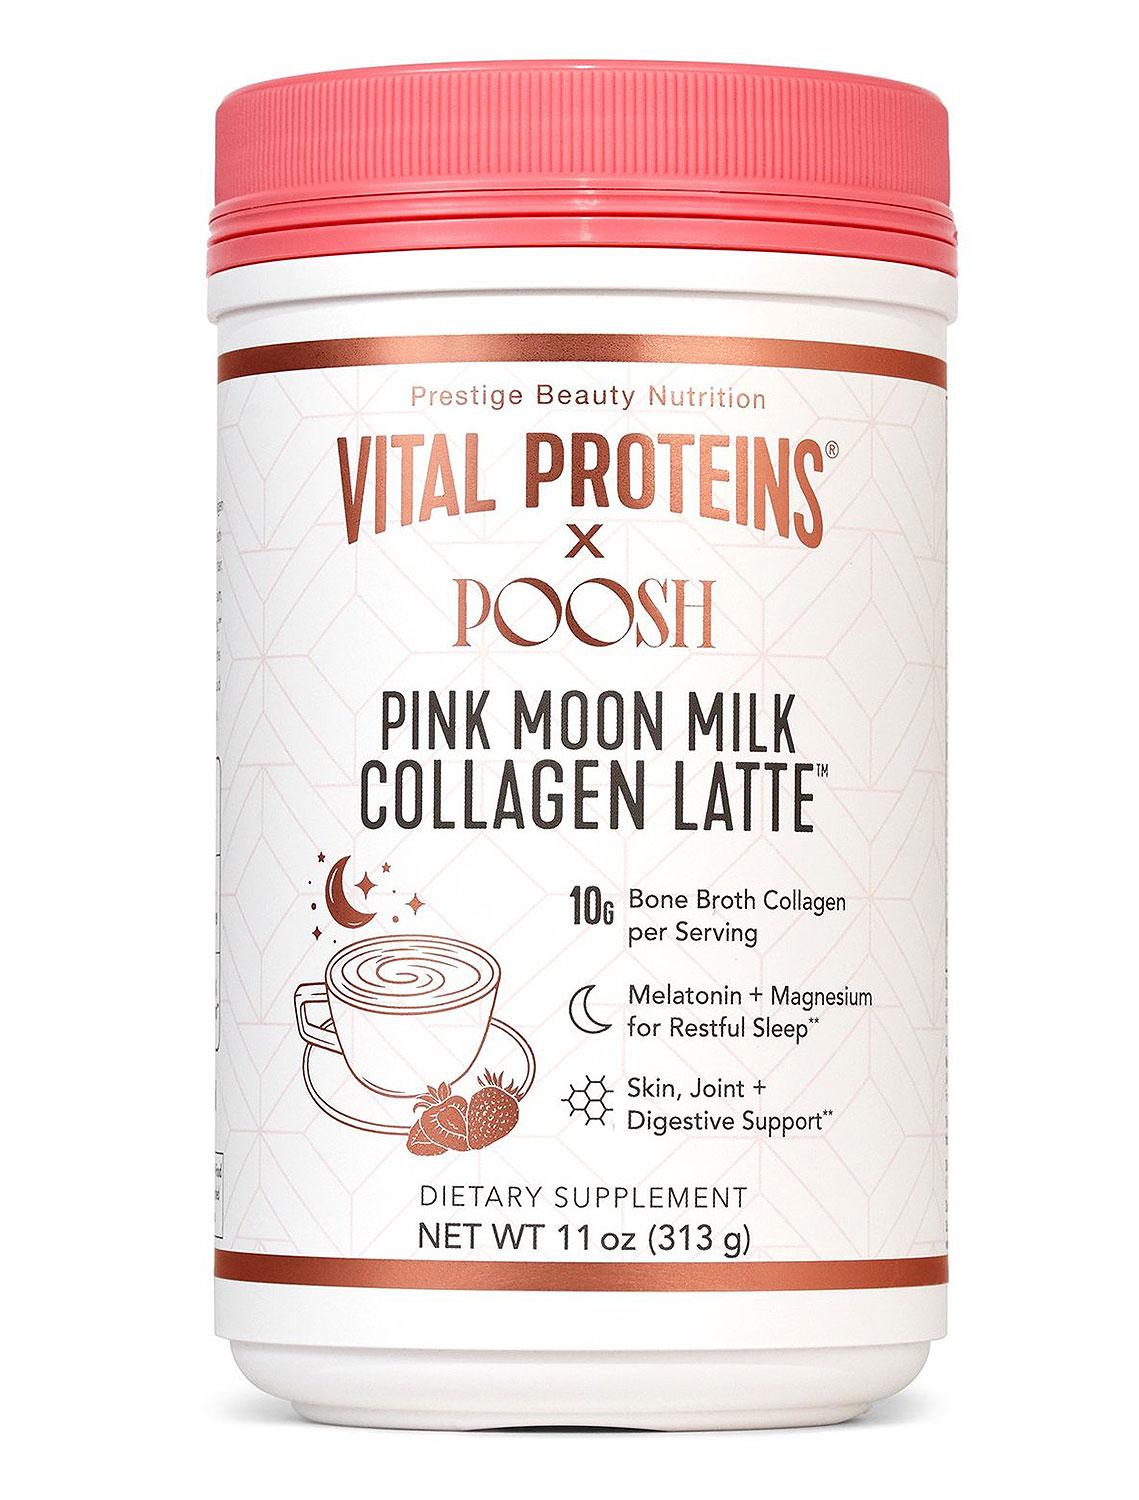 Vital Proteins x Poosh Pink Moon Milk Collagen Latte